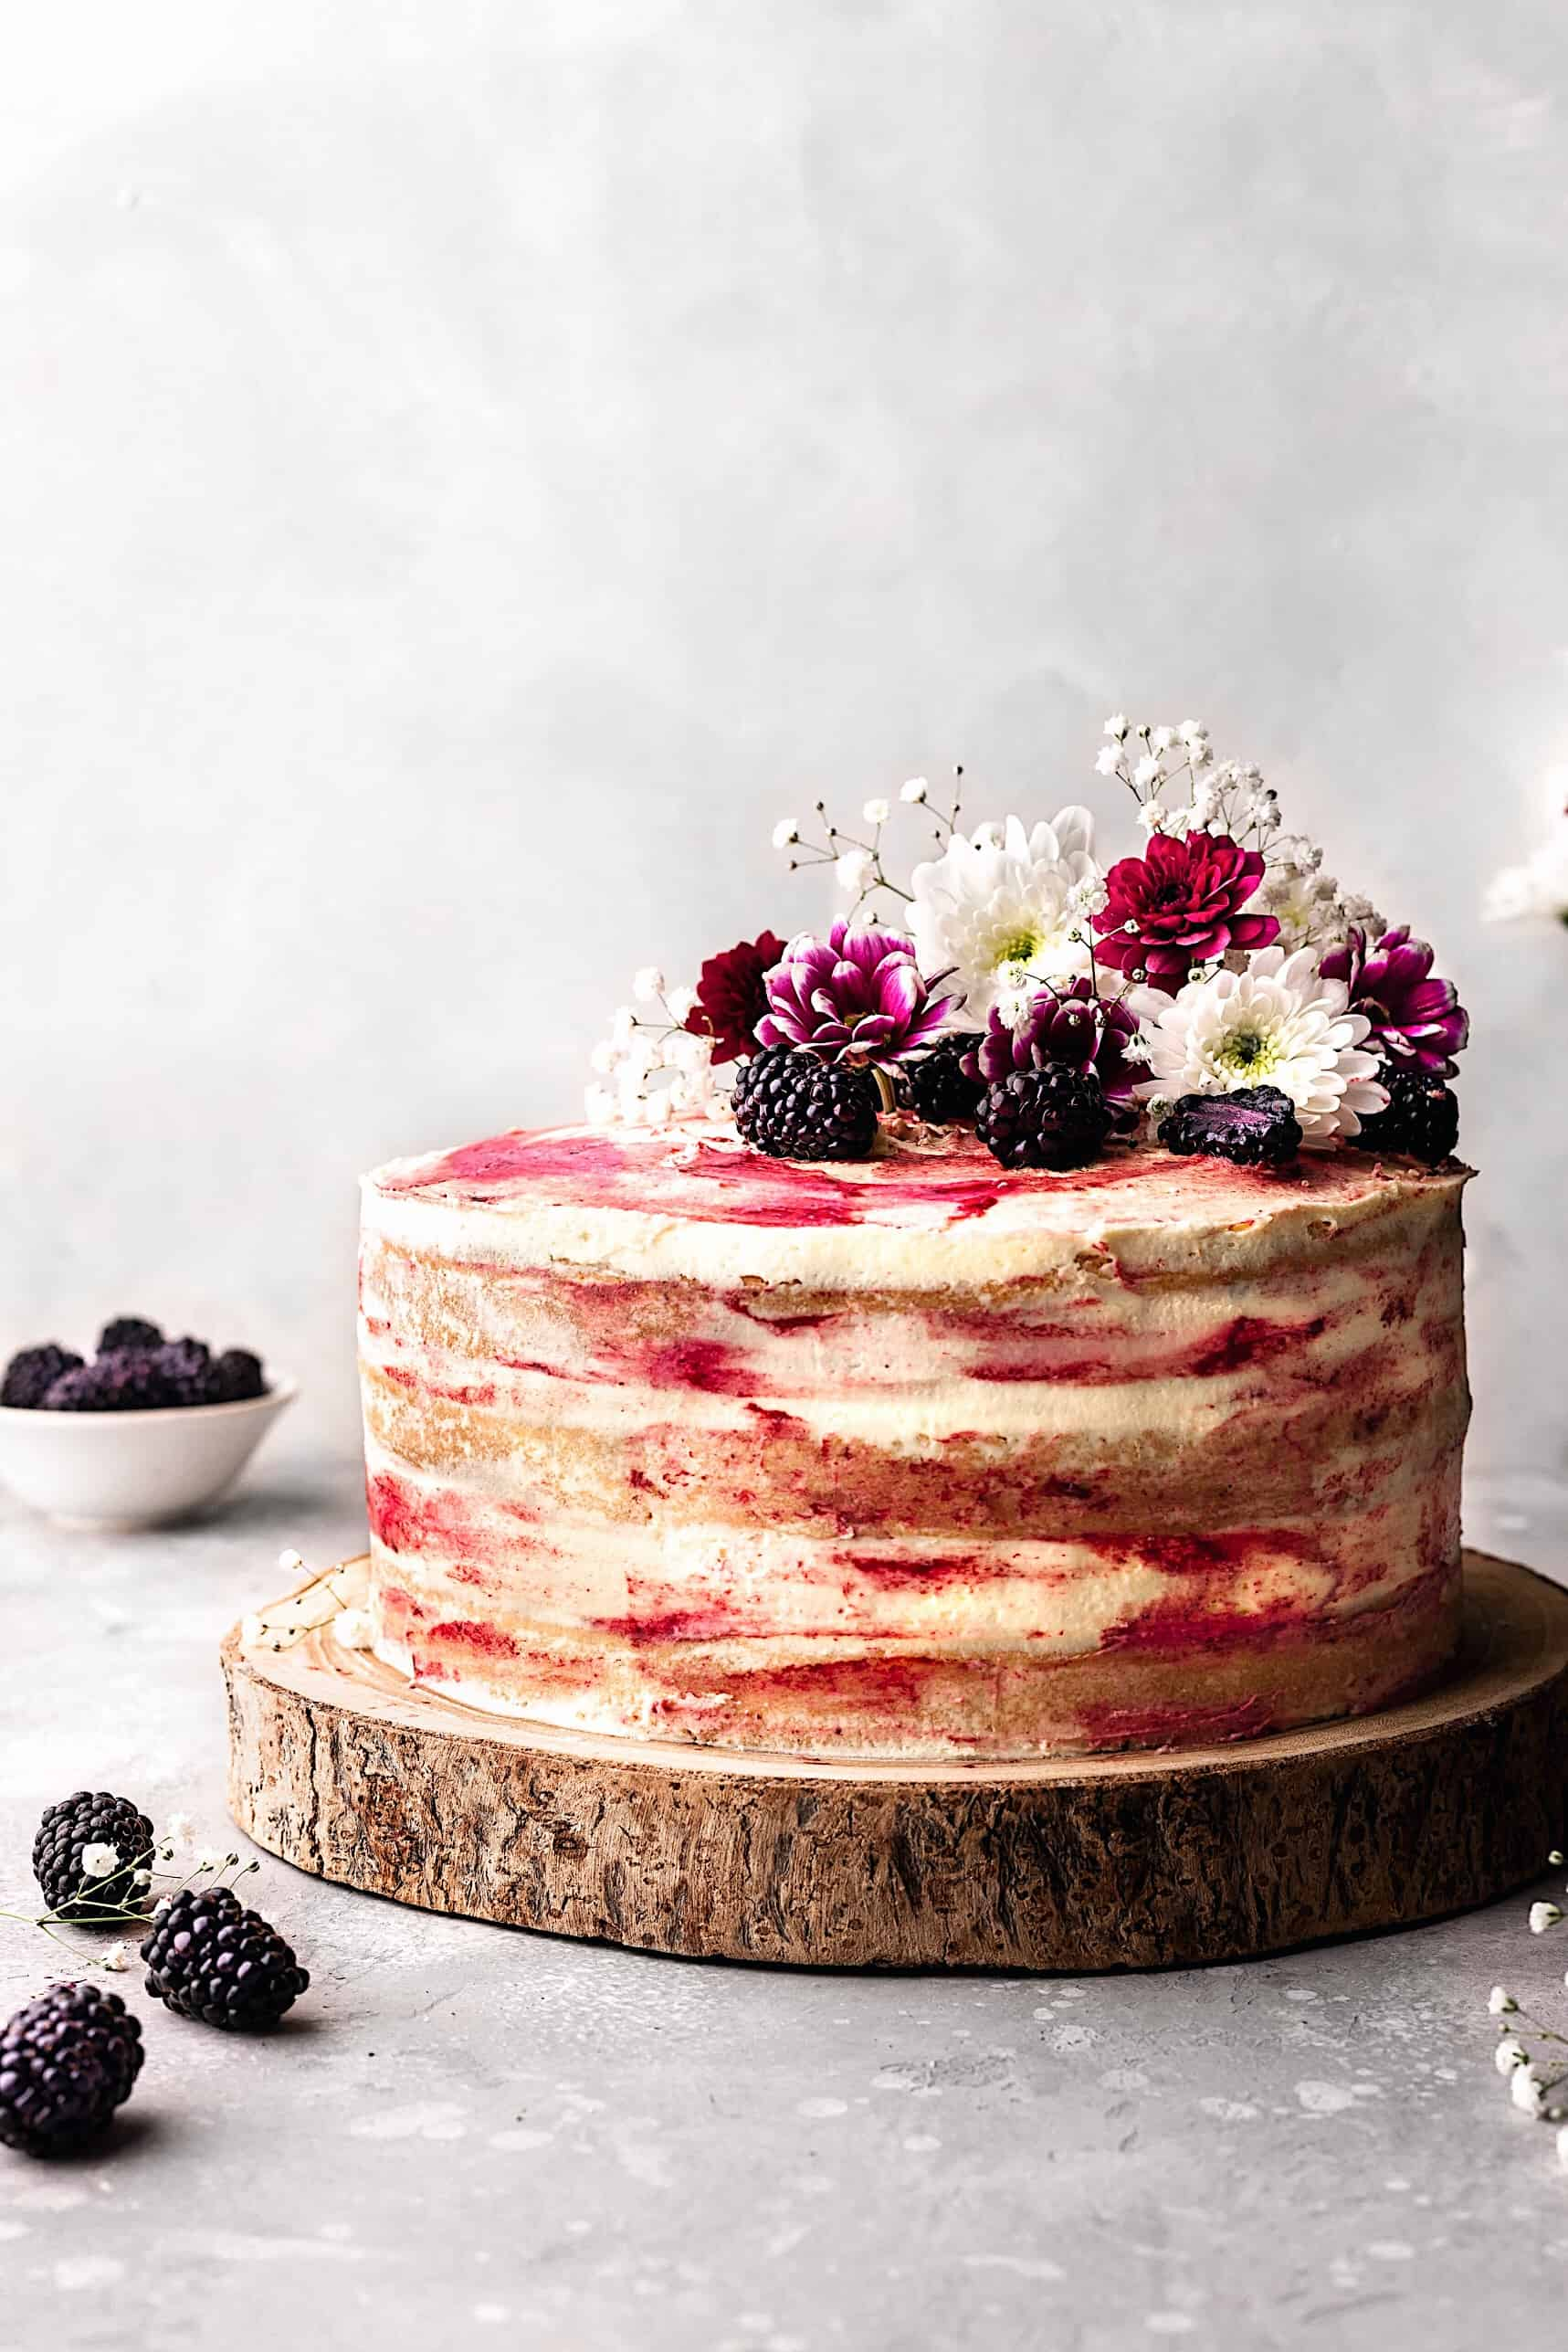 Vegan Blackberry and Gin Cake #cake #recipe #vegan #vegancake #dairyfree #blackberry #gin #seedlip #fruit